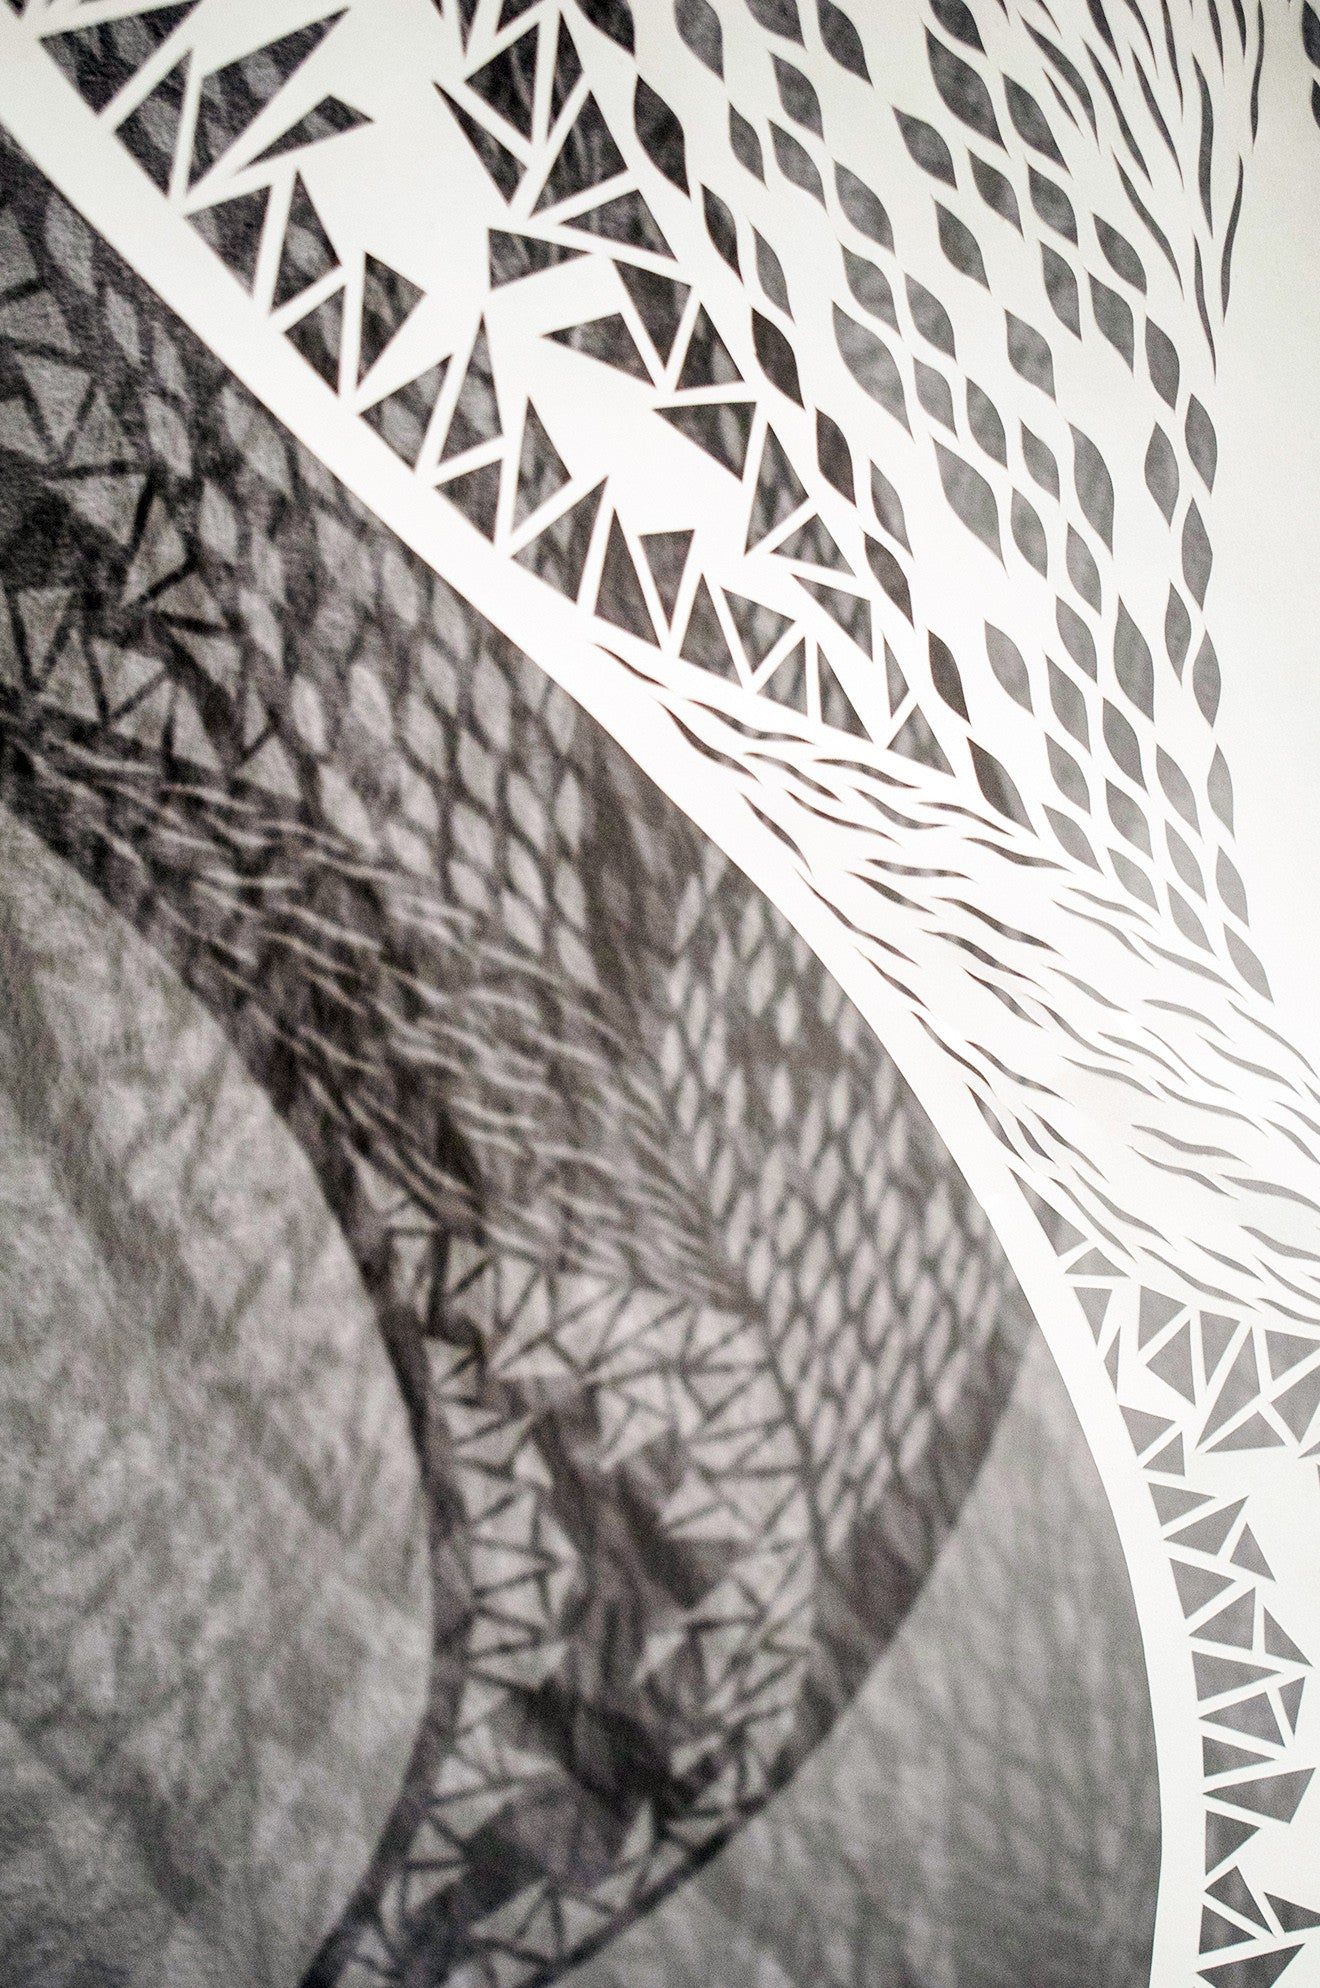 Hand cut geometric paper artwork by Shannon Bartlett-Smith at LINLEY